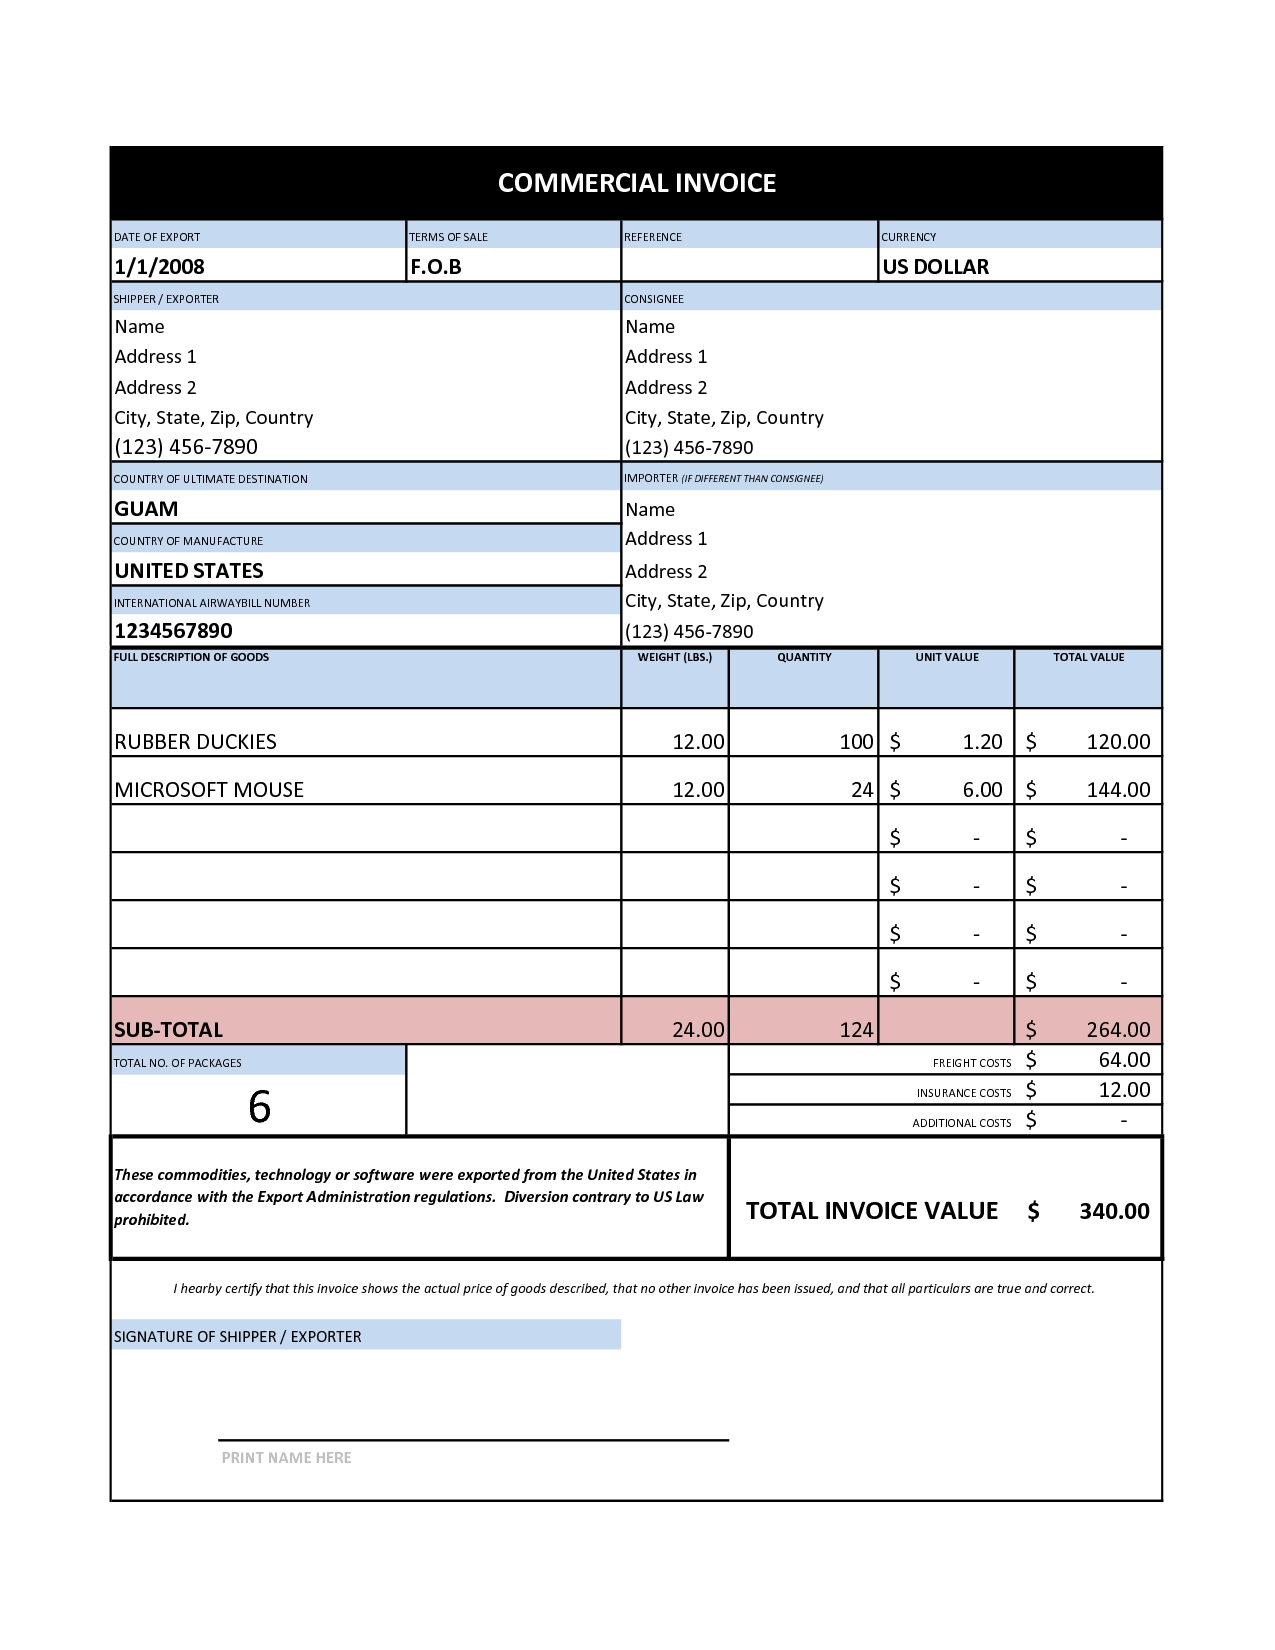 sample invoice in excel 10 samples and steps to create invoice template excel 1275 X 1650